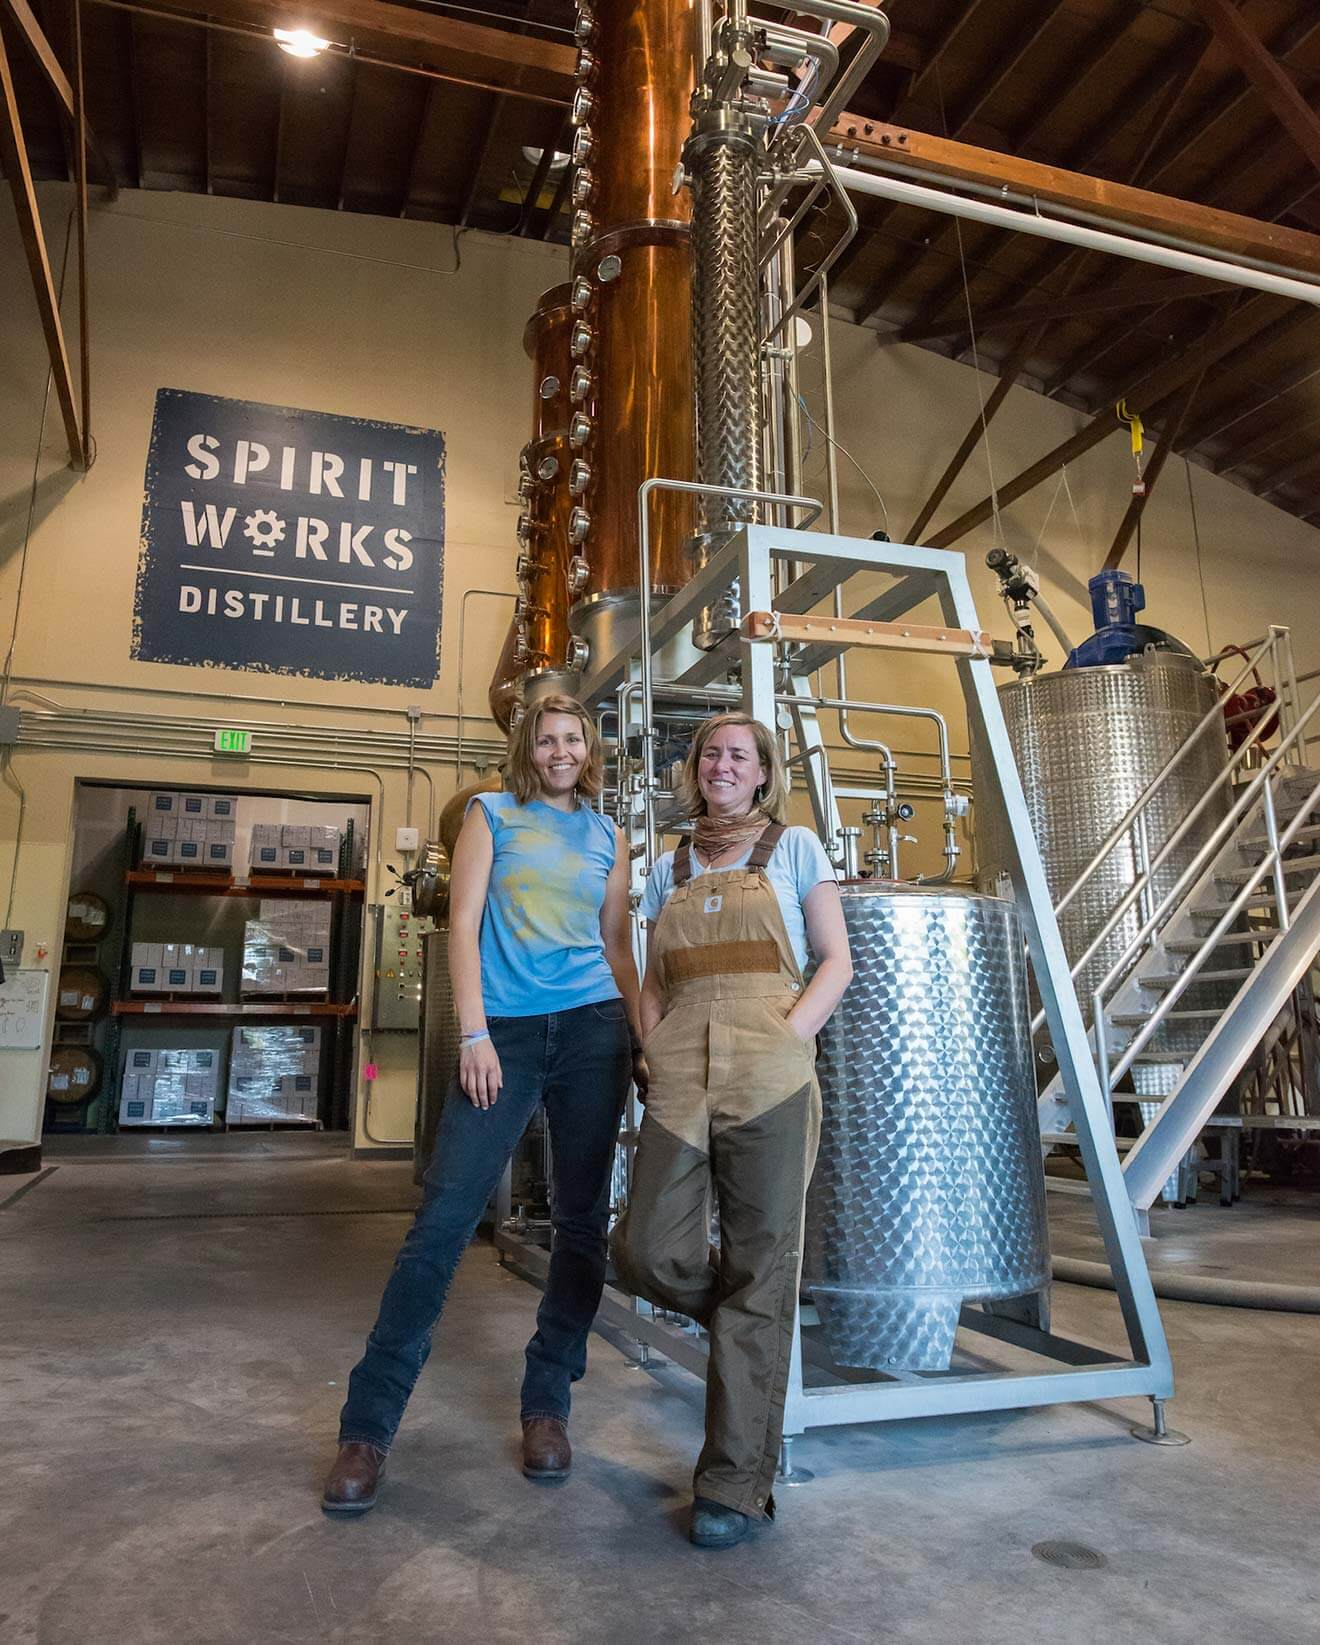 Spirit Works Distillery Sloe Gin Fizz, ashby and lauren of spirit works distillery, cocktail recipes